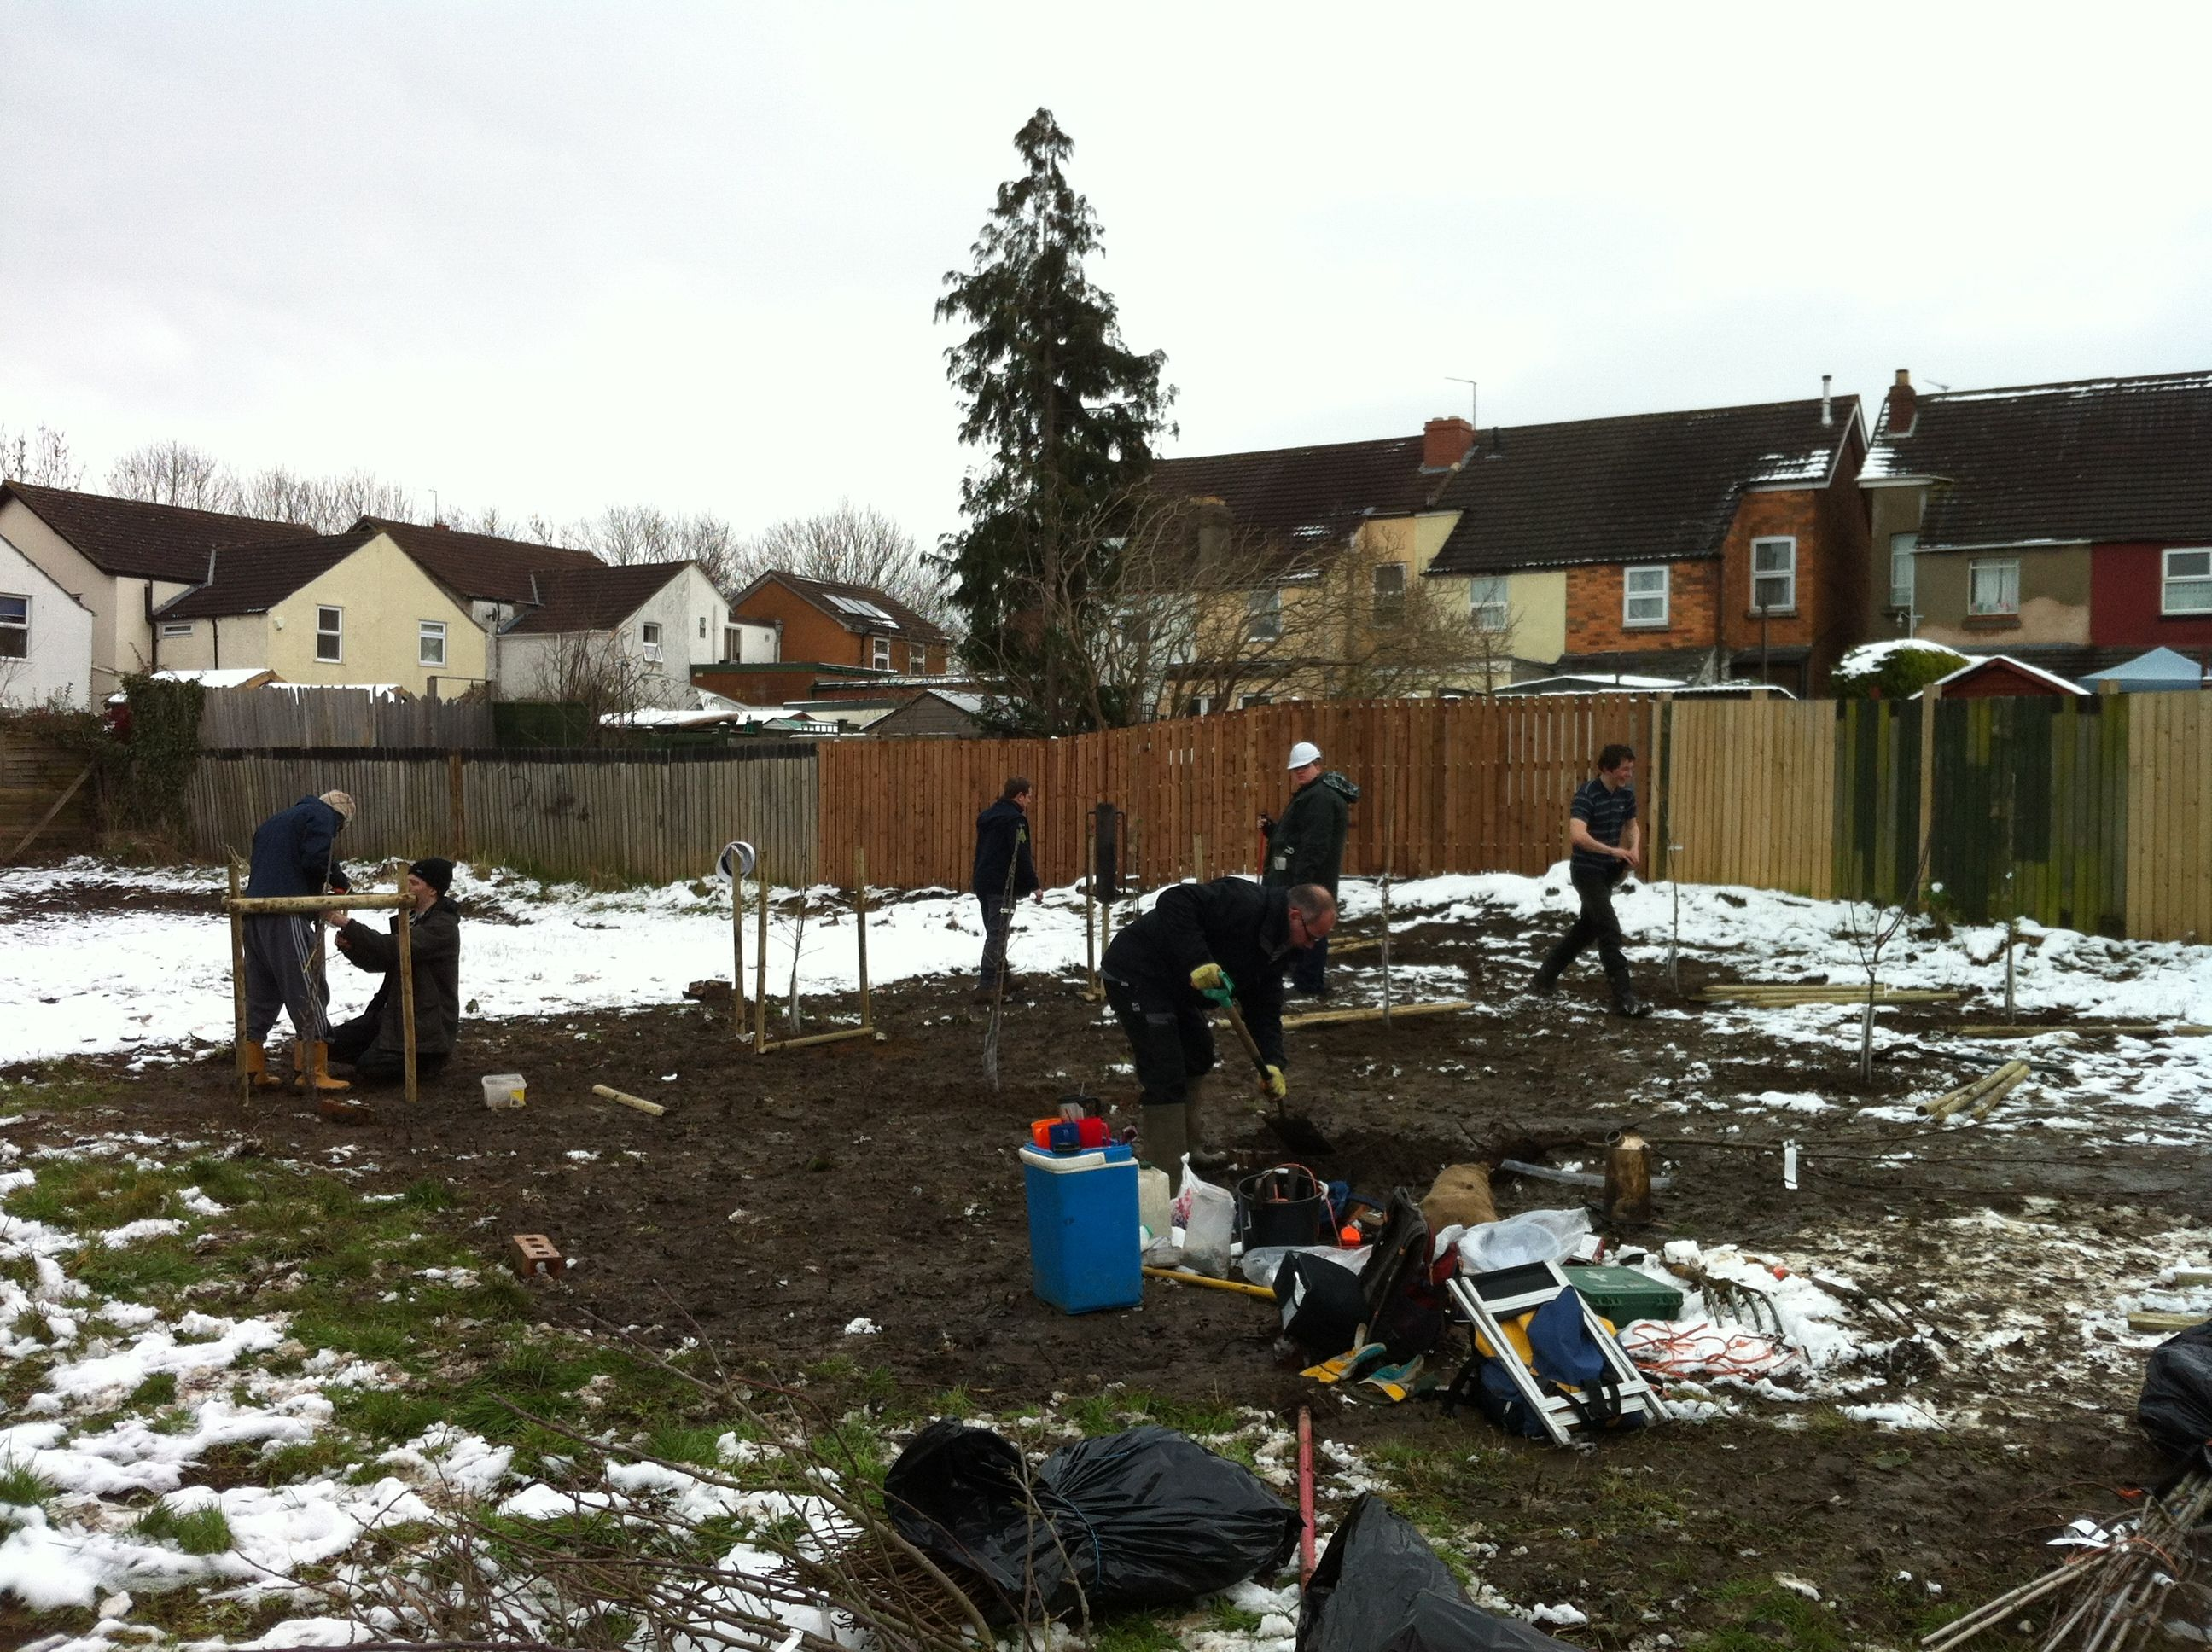 Proving that volunteers give their time in all weathers